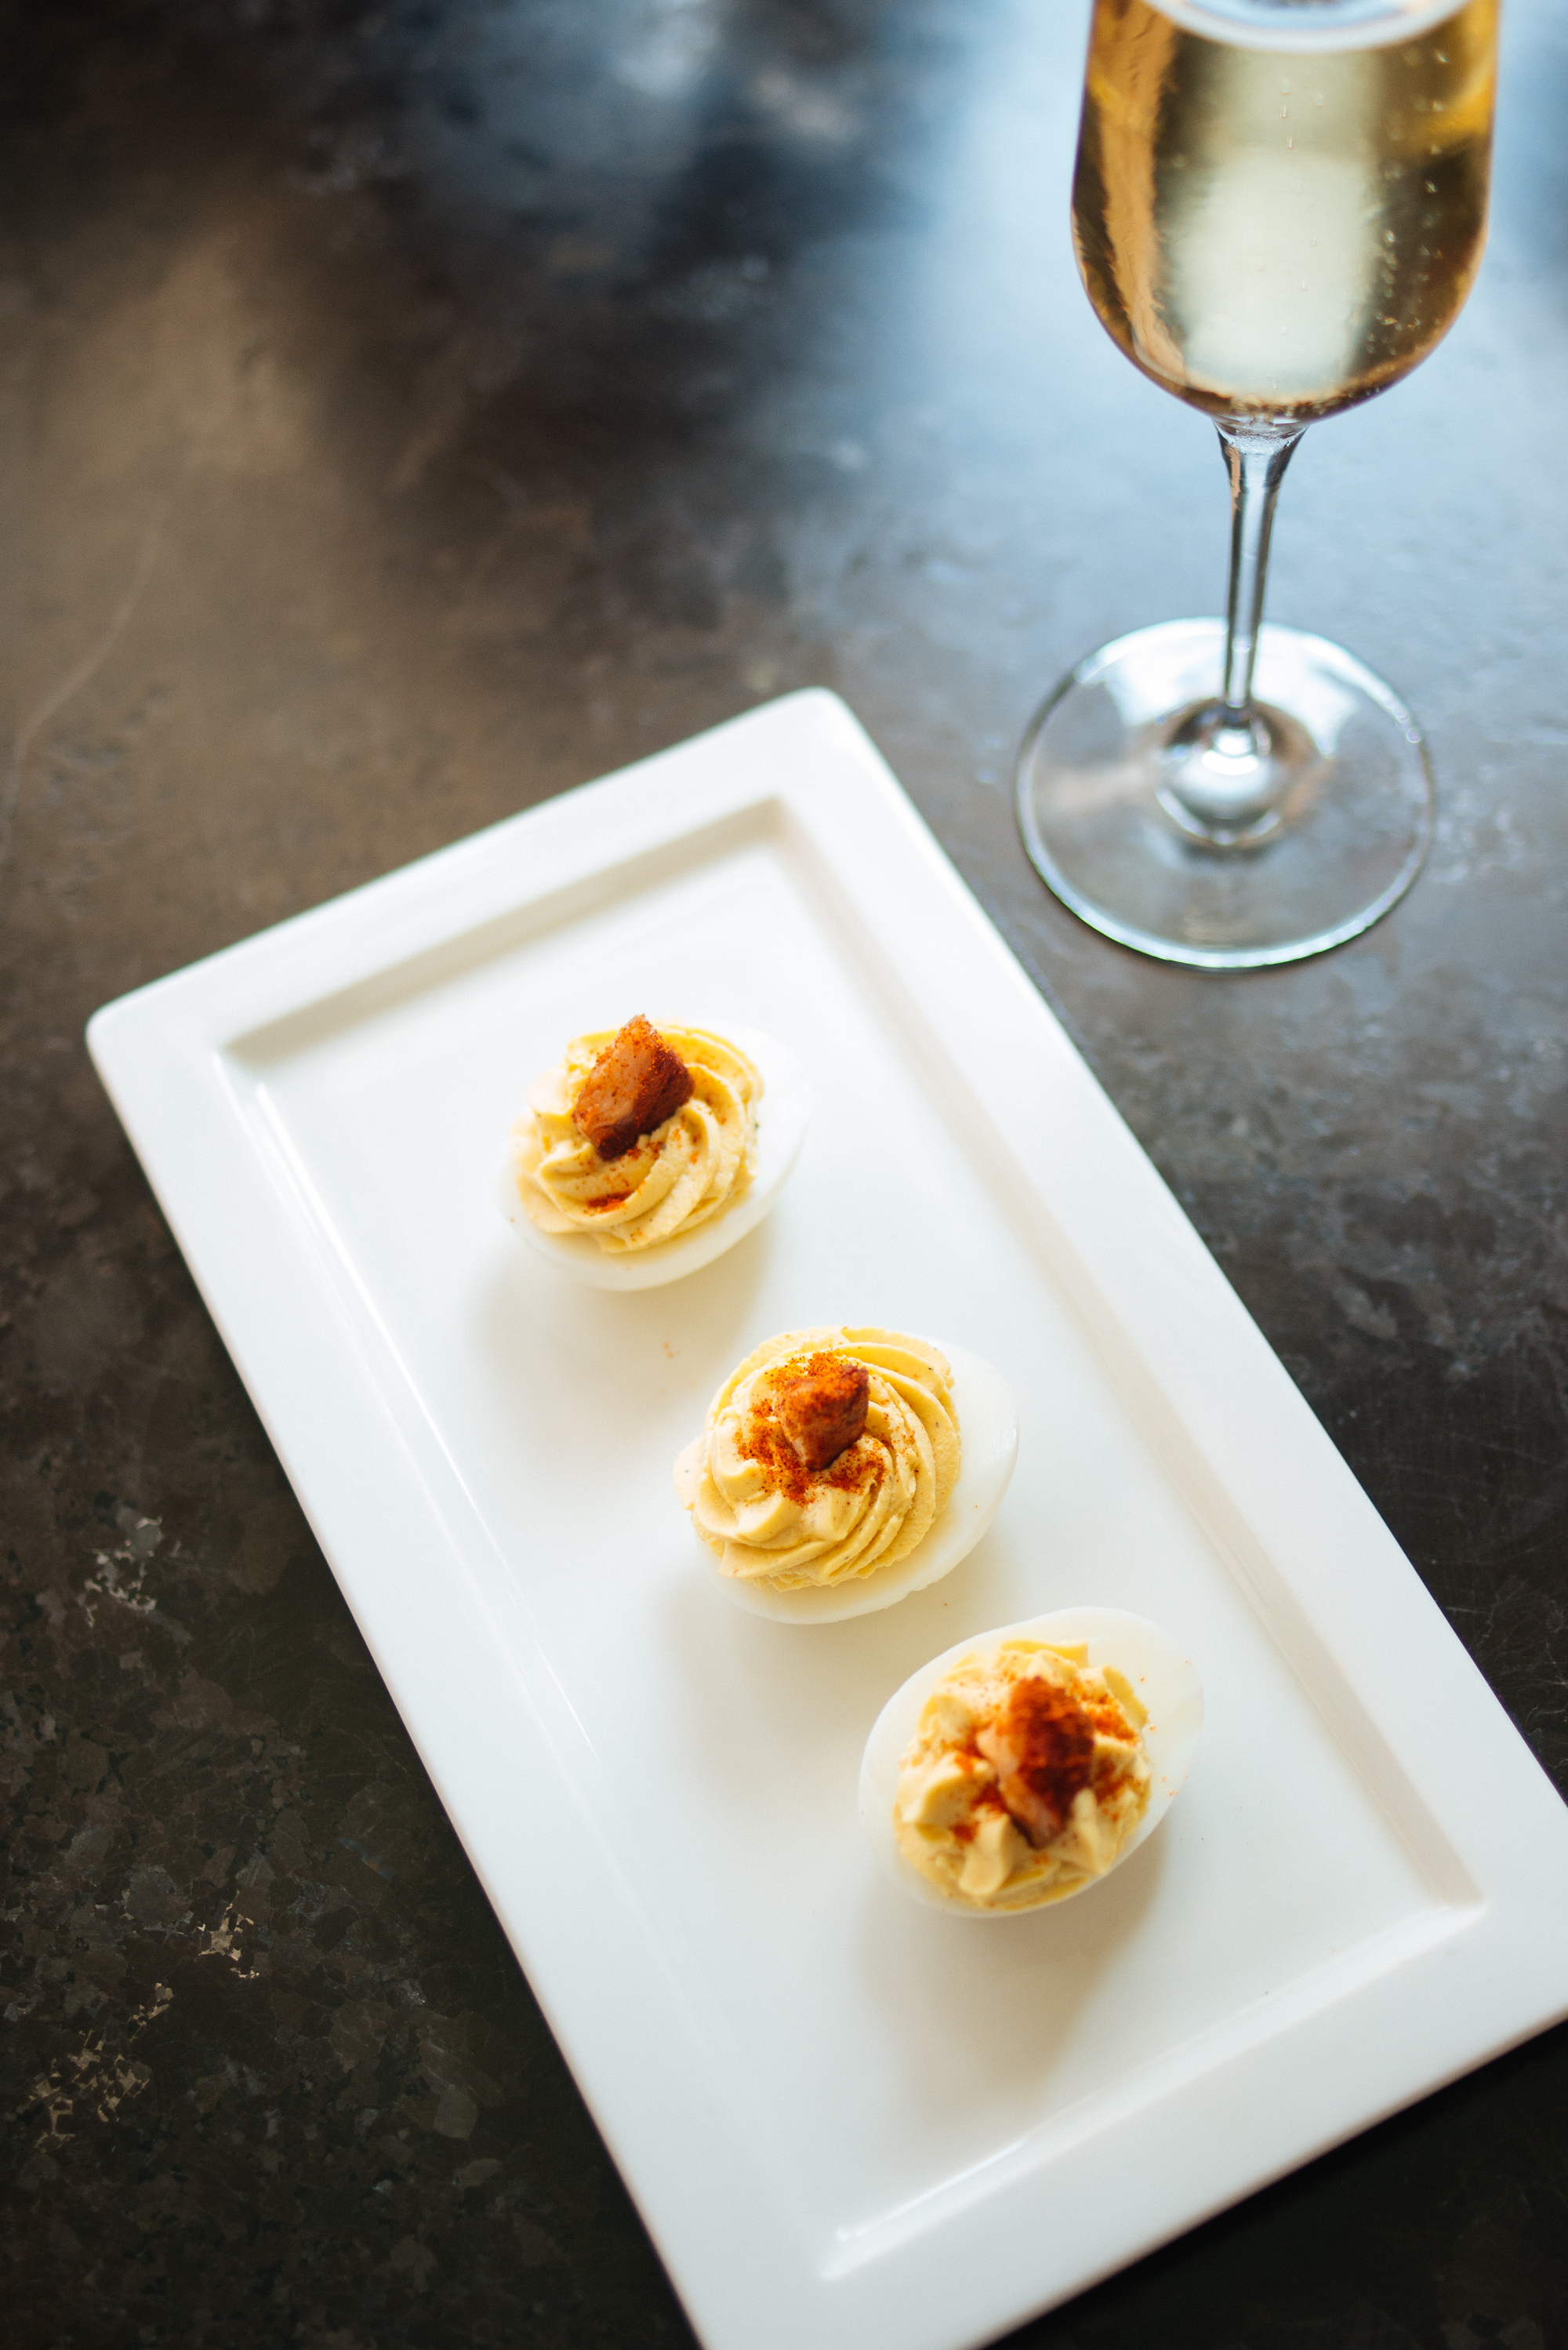 DEVILED EGGS - smoked salmon, paprika, mustard